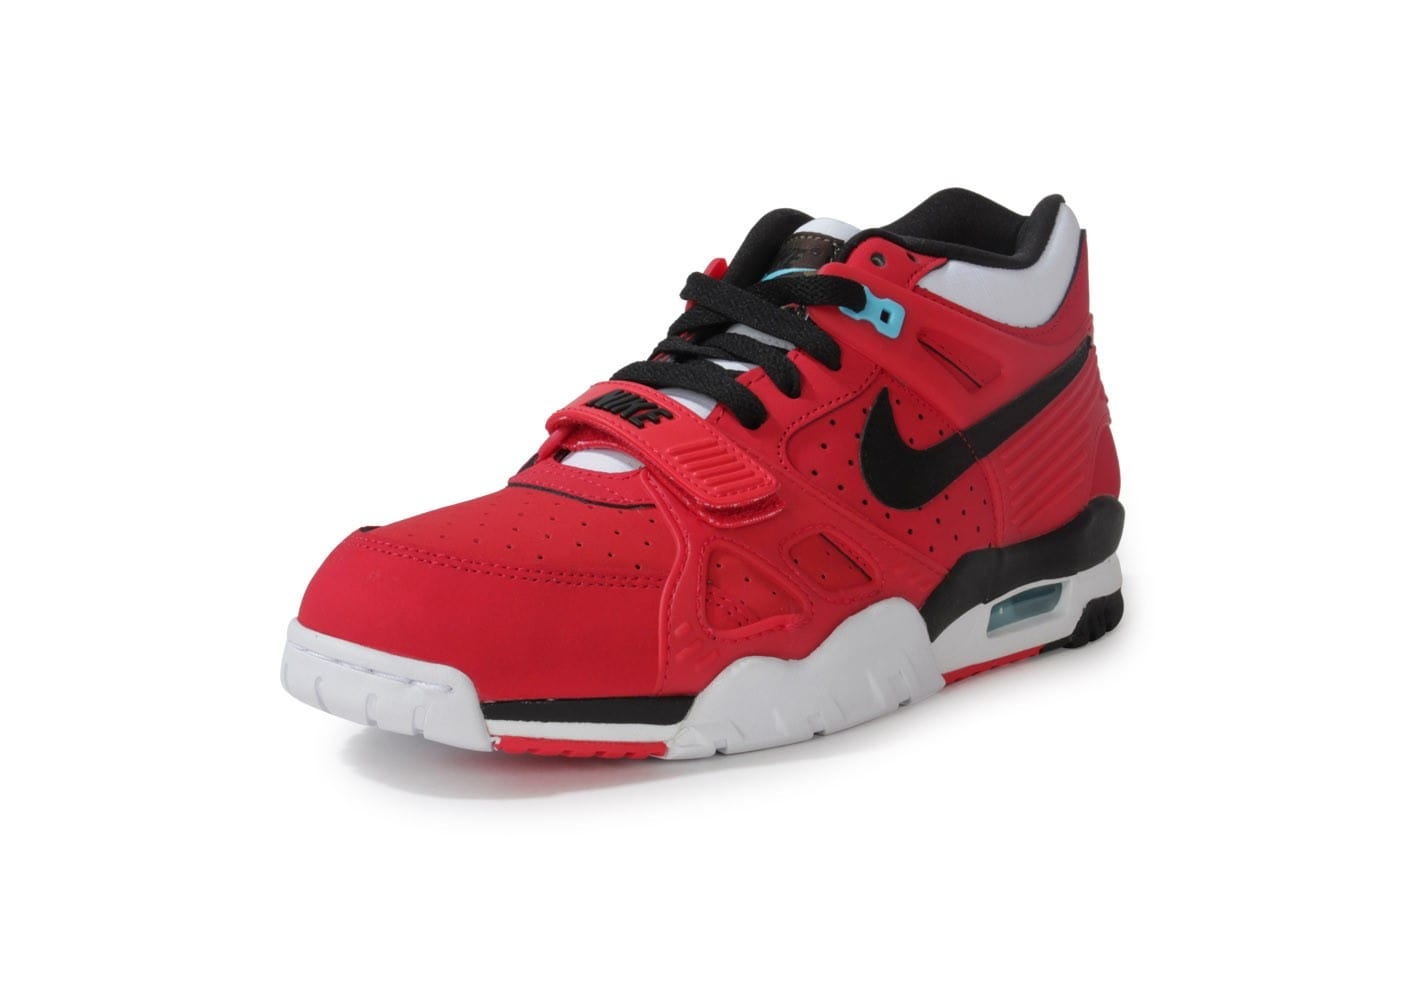 low priced 1c64e 1dc44 chaussures nike air trainer 3 rouge vue avant l